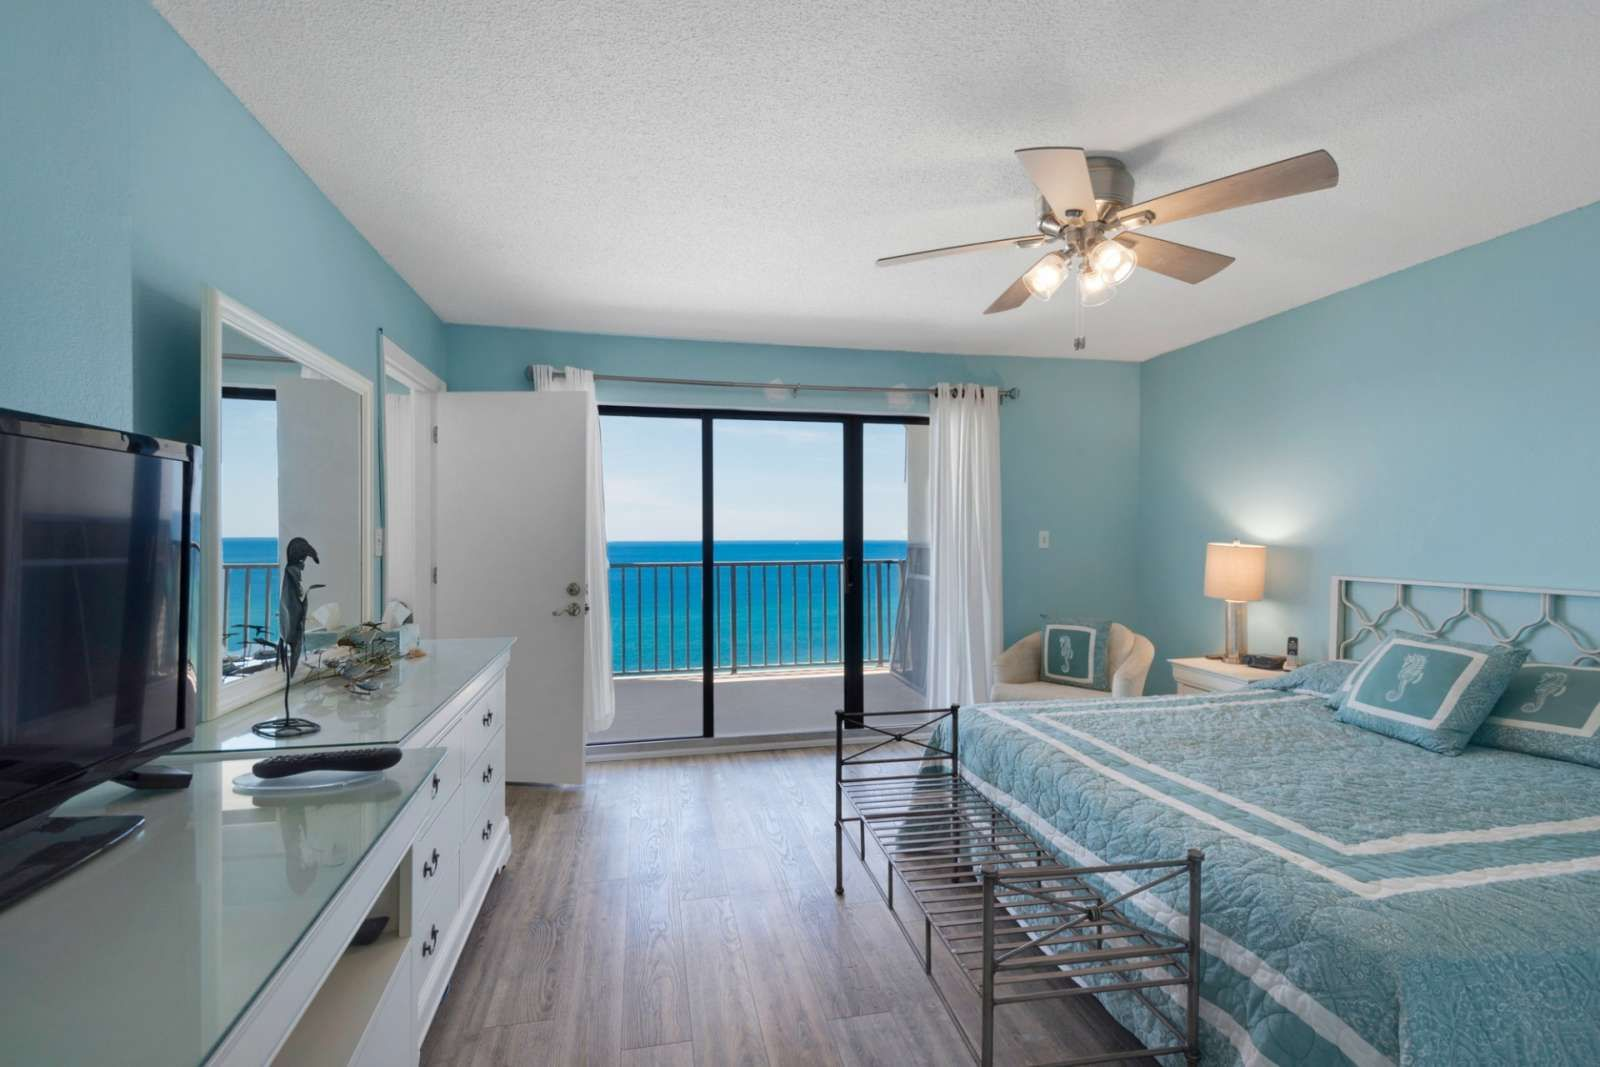 Pin On Panama City Beach Vacation Rentals And Attractions In Florida